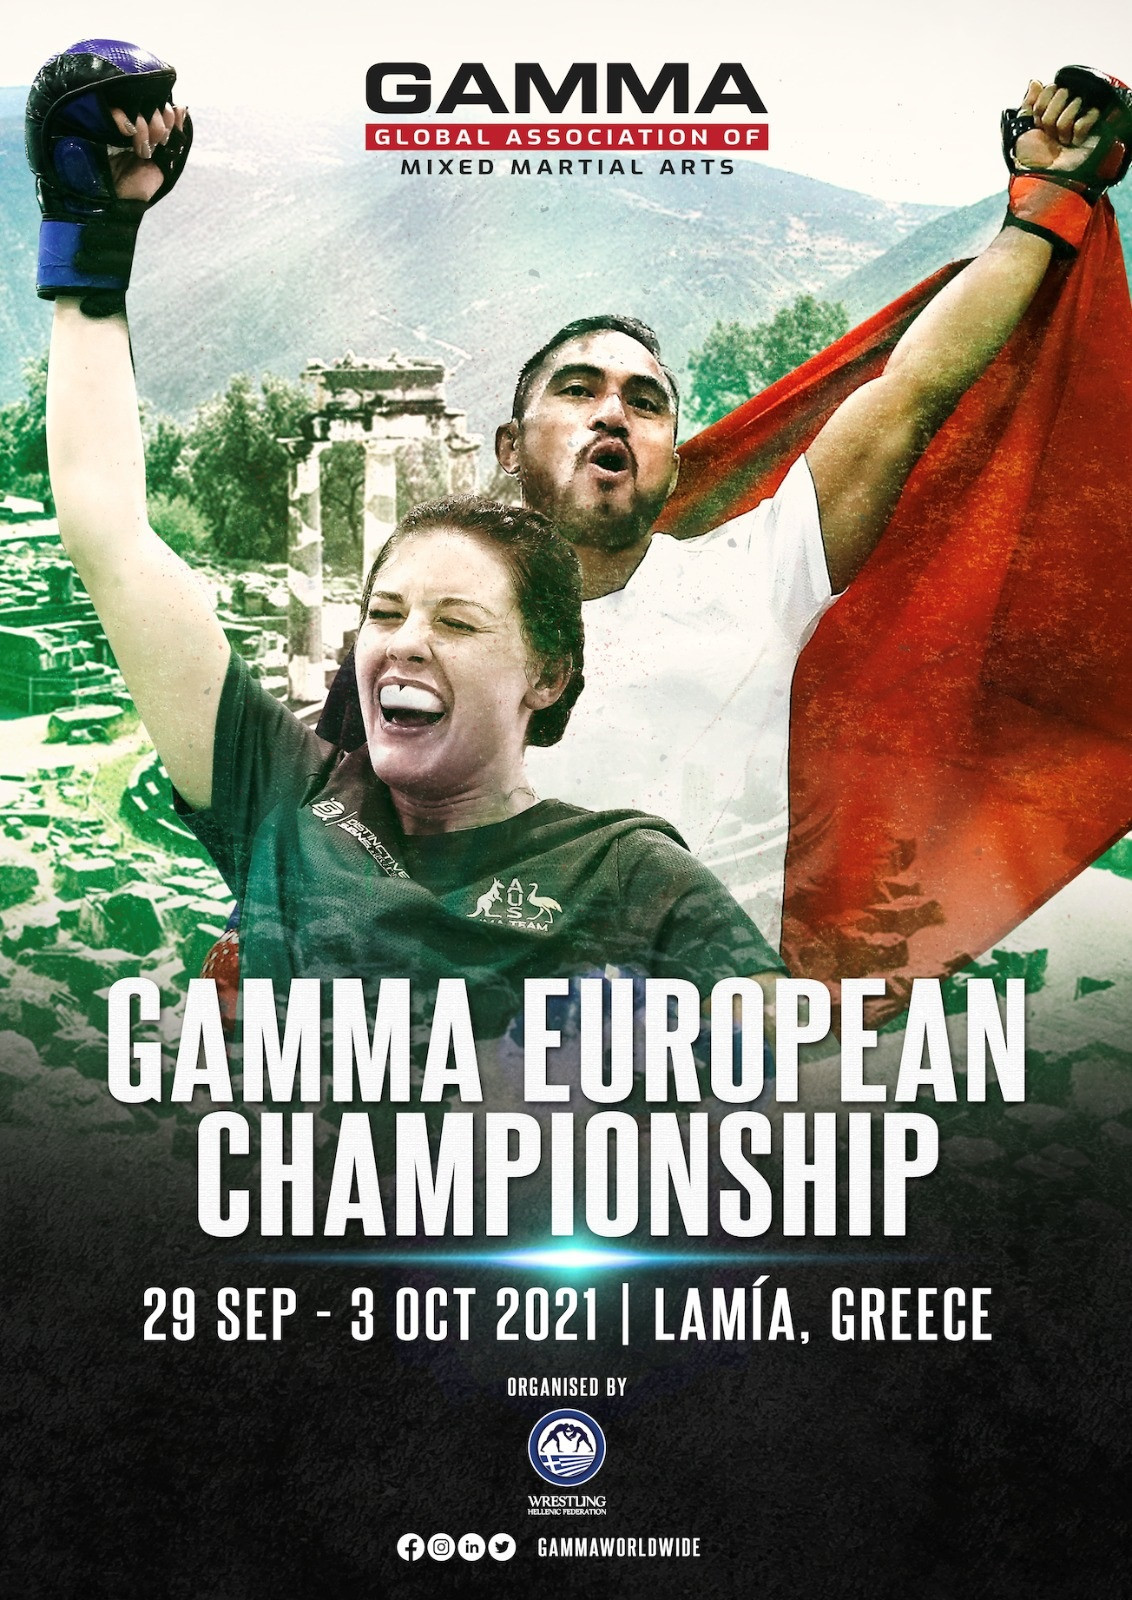 The GAMMA has decided to move the European Championship from Prague due to COVID-19 restrictions ©GAMMA